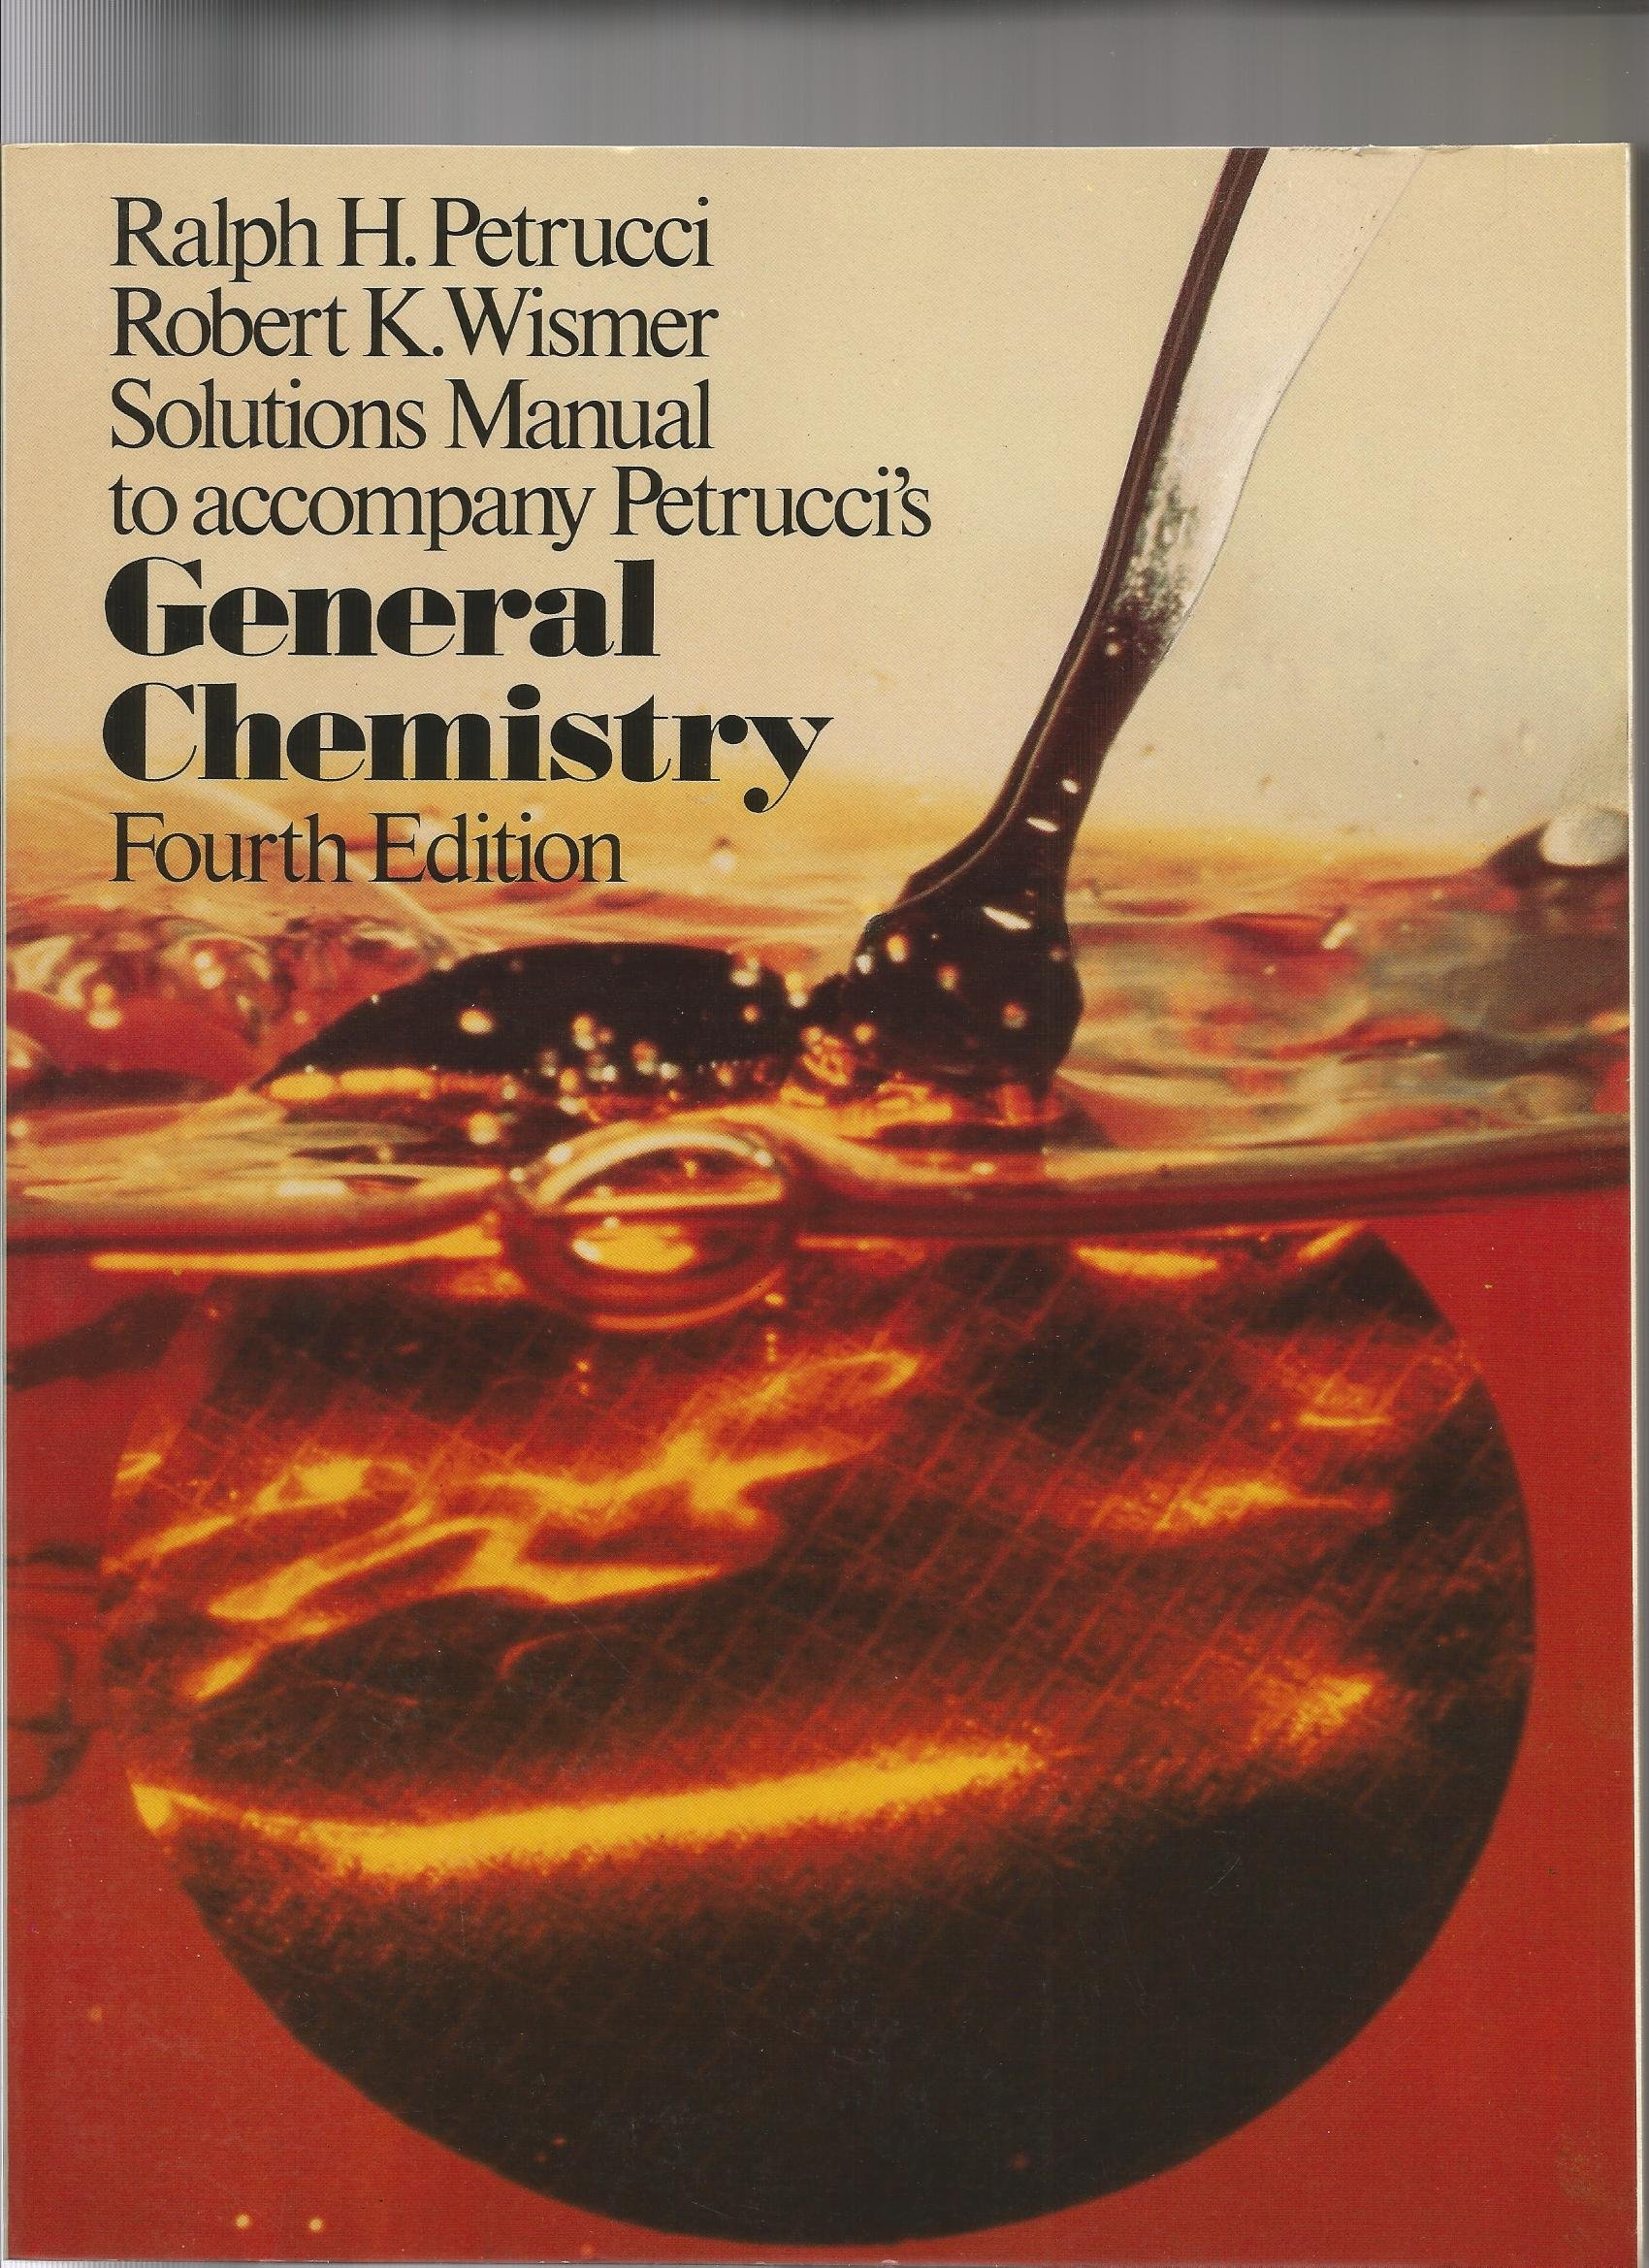 Solutions manual to accompany Petrucci's General chemistry: Amazon.co.uk:  Ralph H Petrucci: 9780023945403: Books